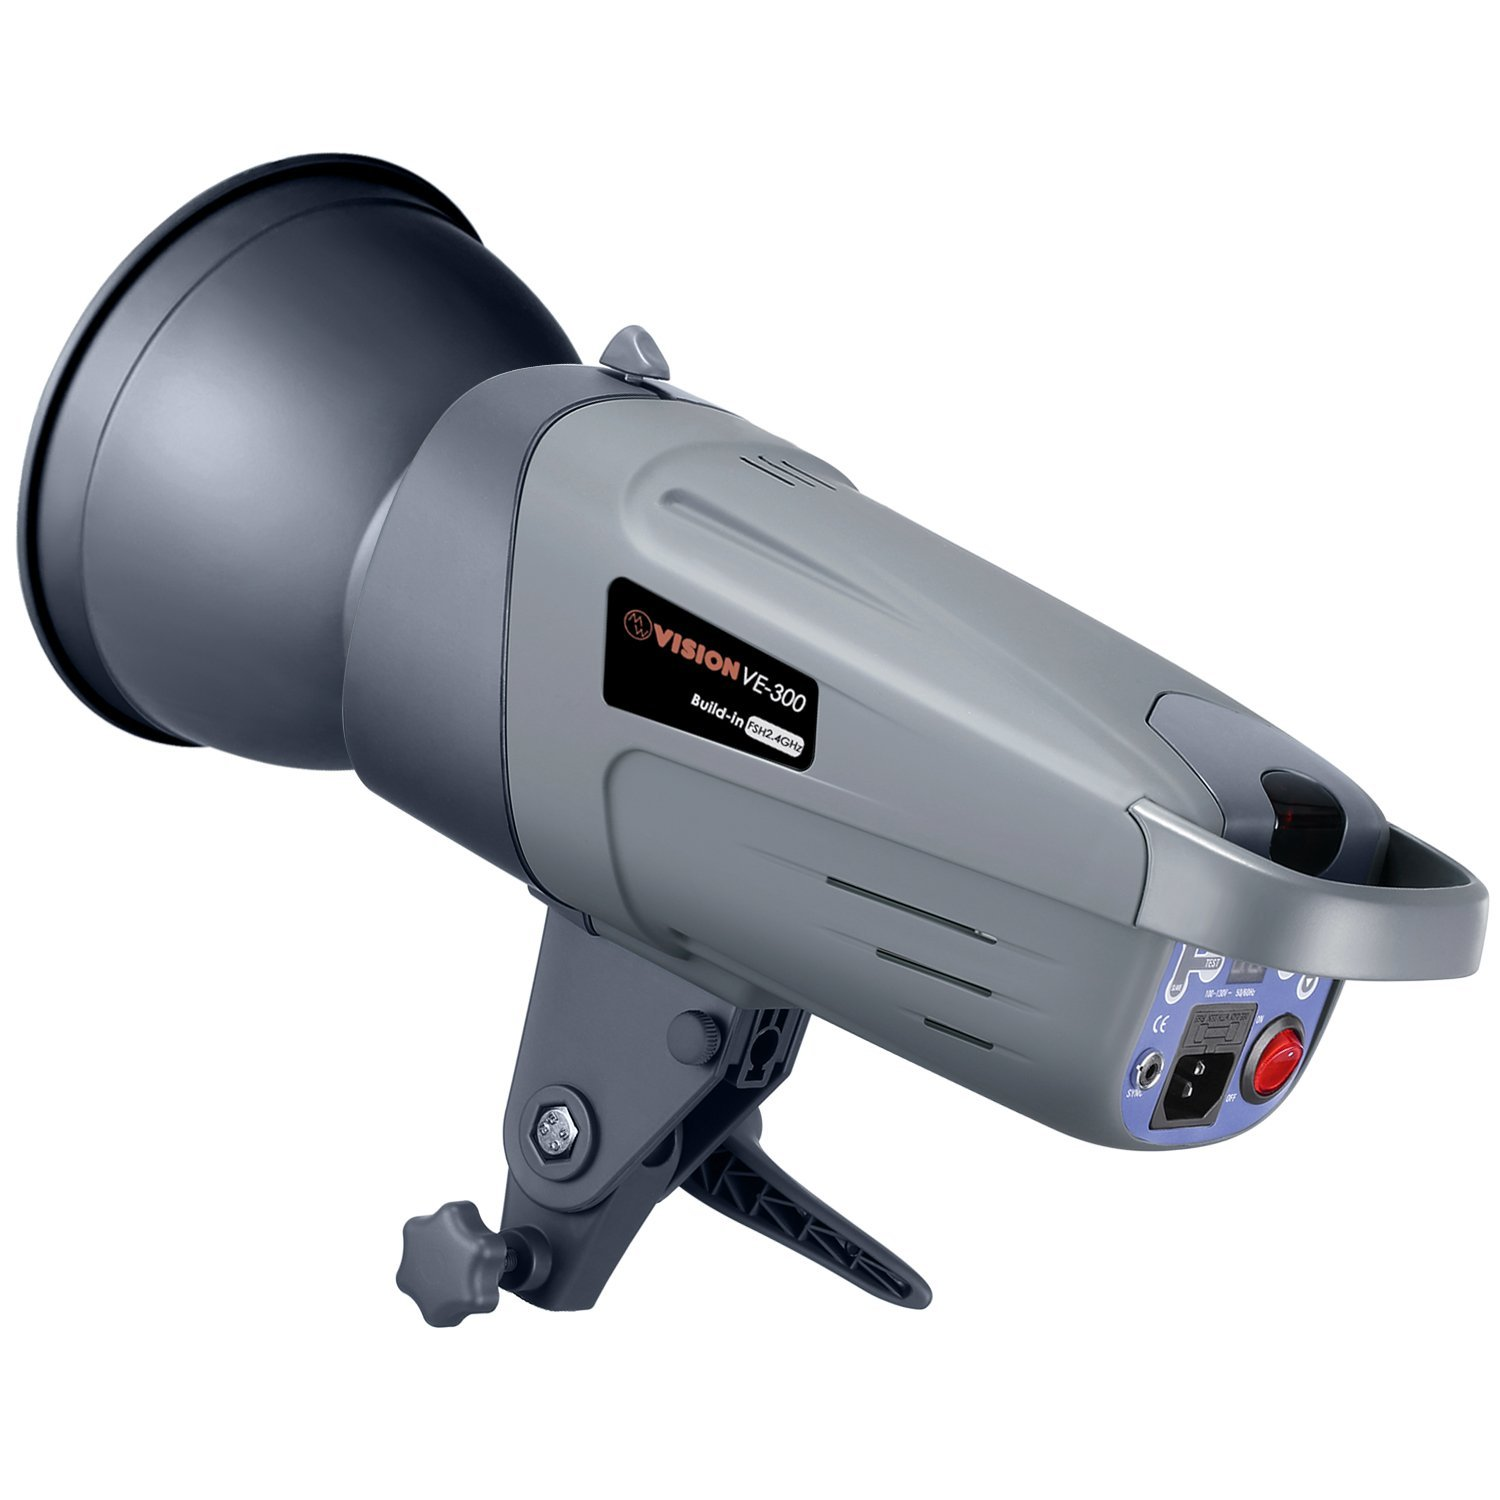 Neewer 300W GN60 Studio Flash Strobe with Built-in 2.4G Wireless Receiver System, Recycle time 0.3-1.5 Seconds, Bowens Mount, VE-300 Plus, German Engineered